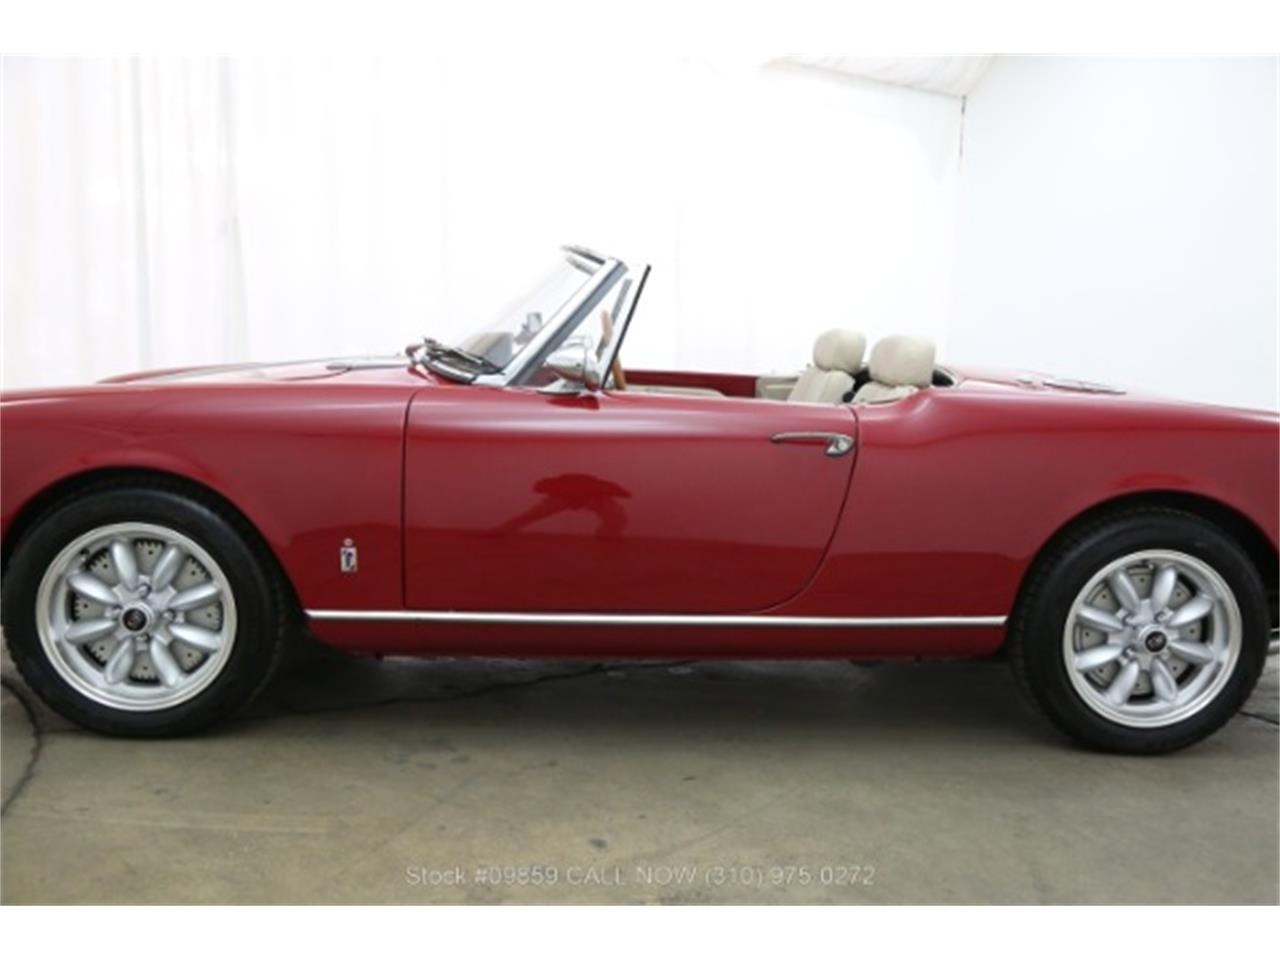 1960 Alfa Romeo Giulietta Spider For Sale Cc 1105408 Rota Wheel Large Picture Of 60 Noxs